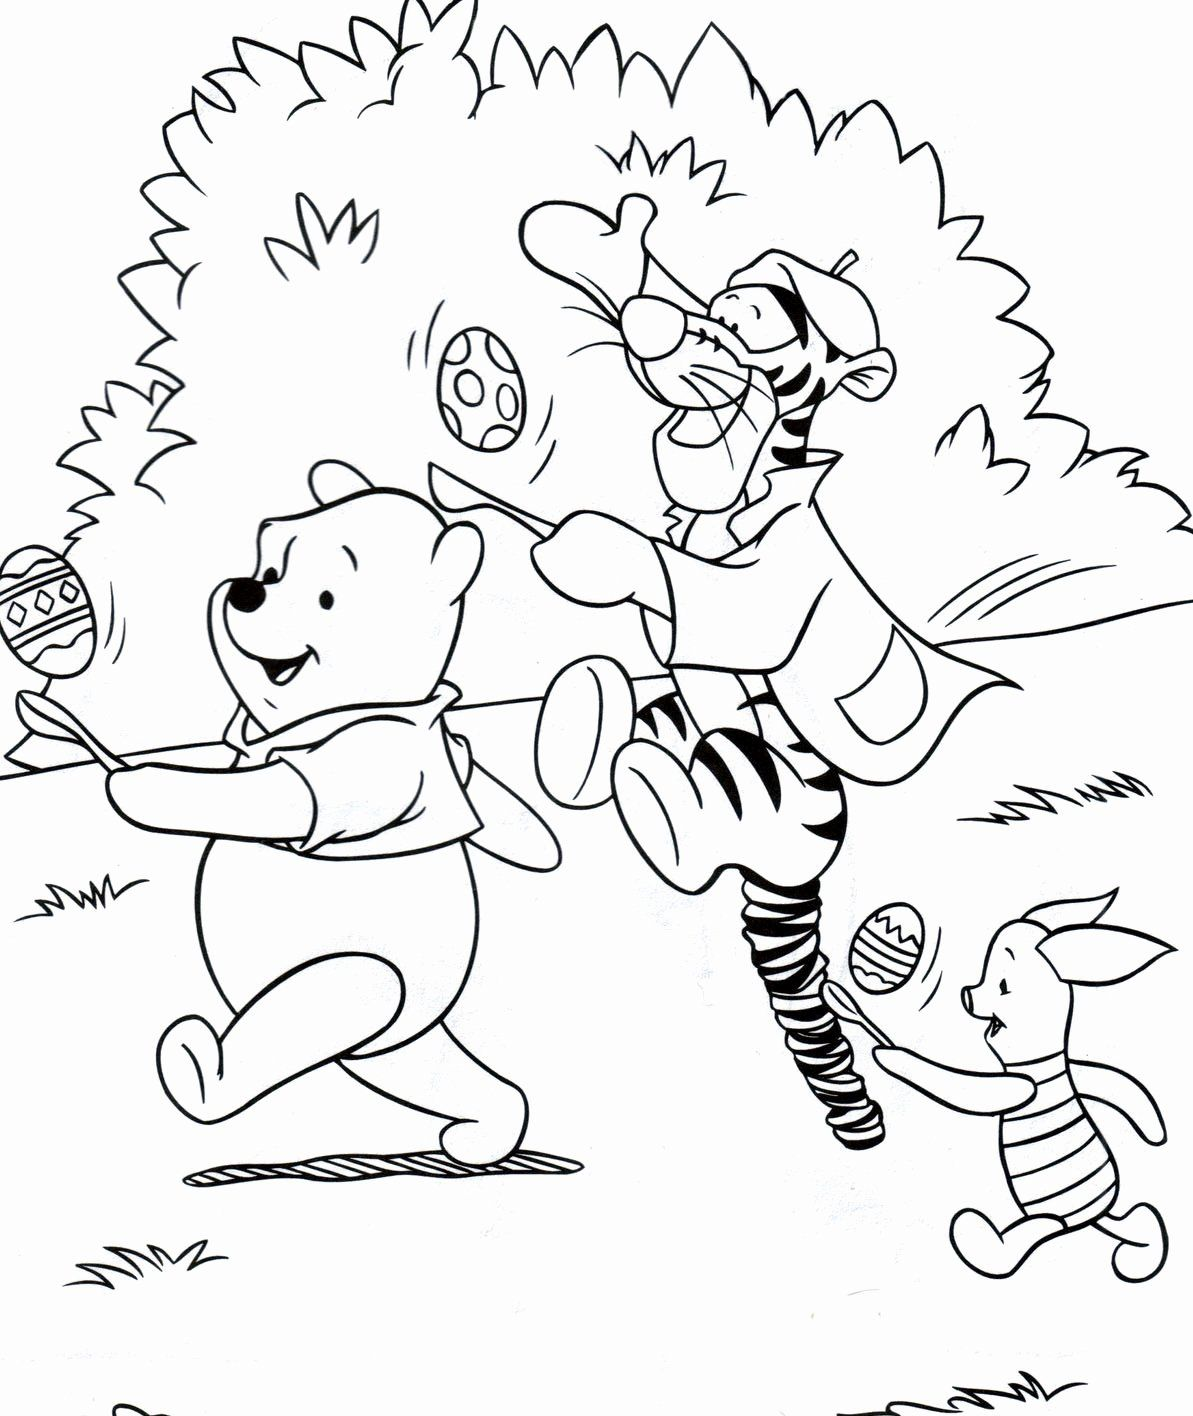 Disney Spring Coloring Pages Beautiful Easter Colouring Winnie The Pooh Disney Easter Colourin Spring Coloring Pages Bunny Coloring Pages Easter Coloring Pages